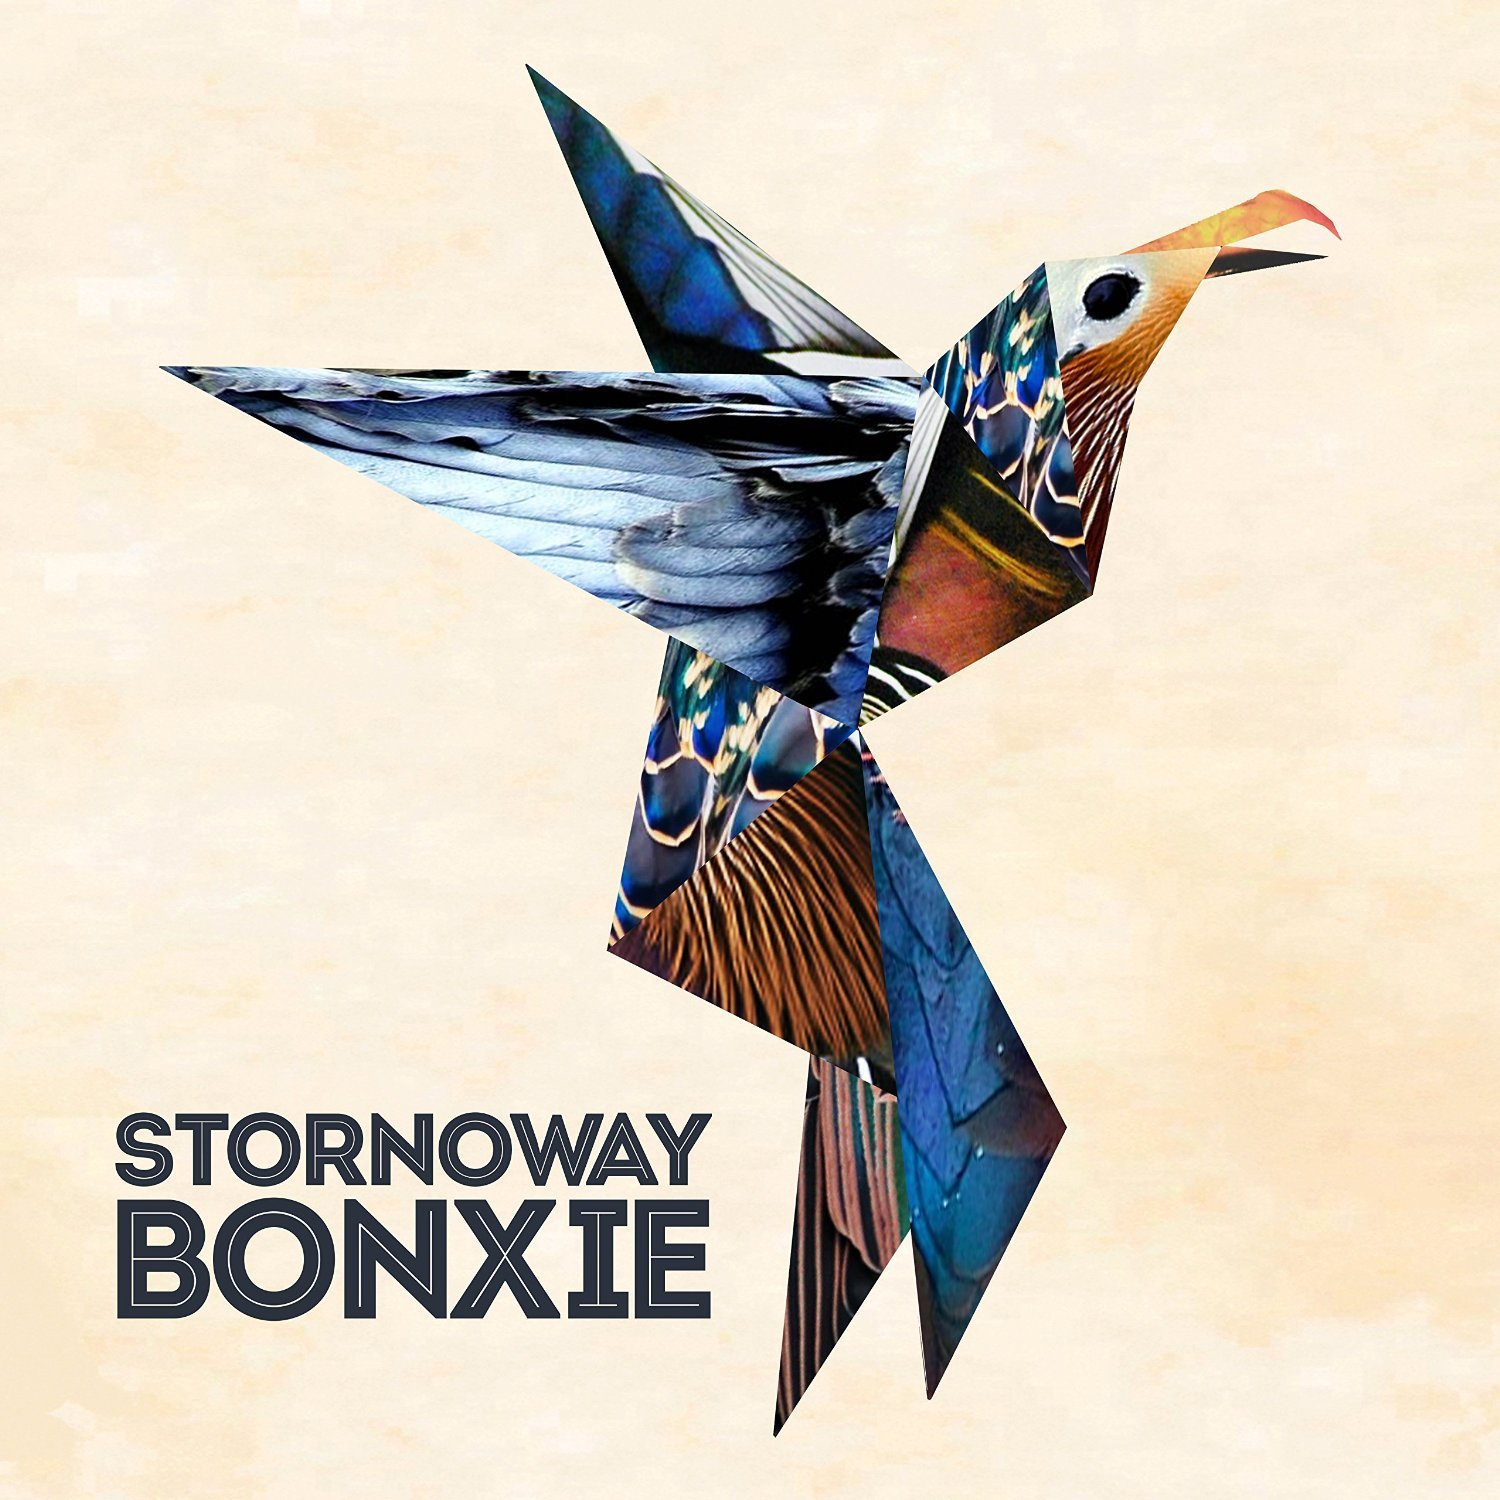 stornoway bonxie origami bird  illustration